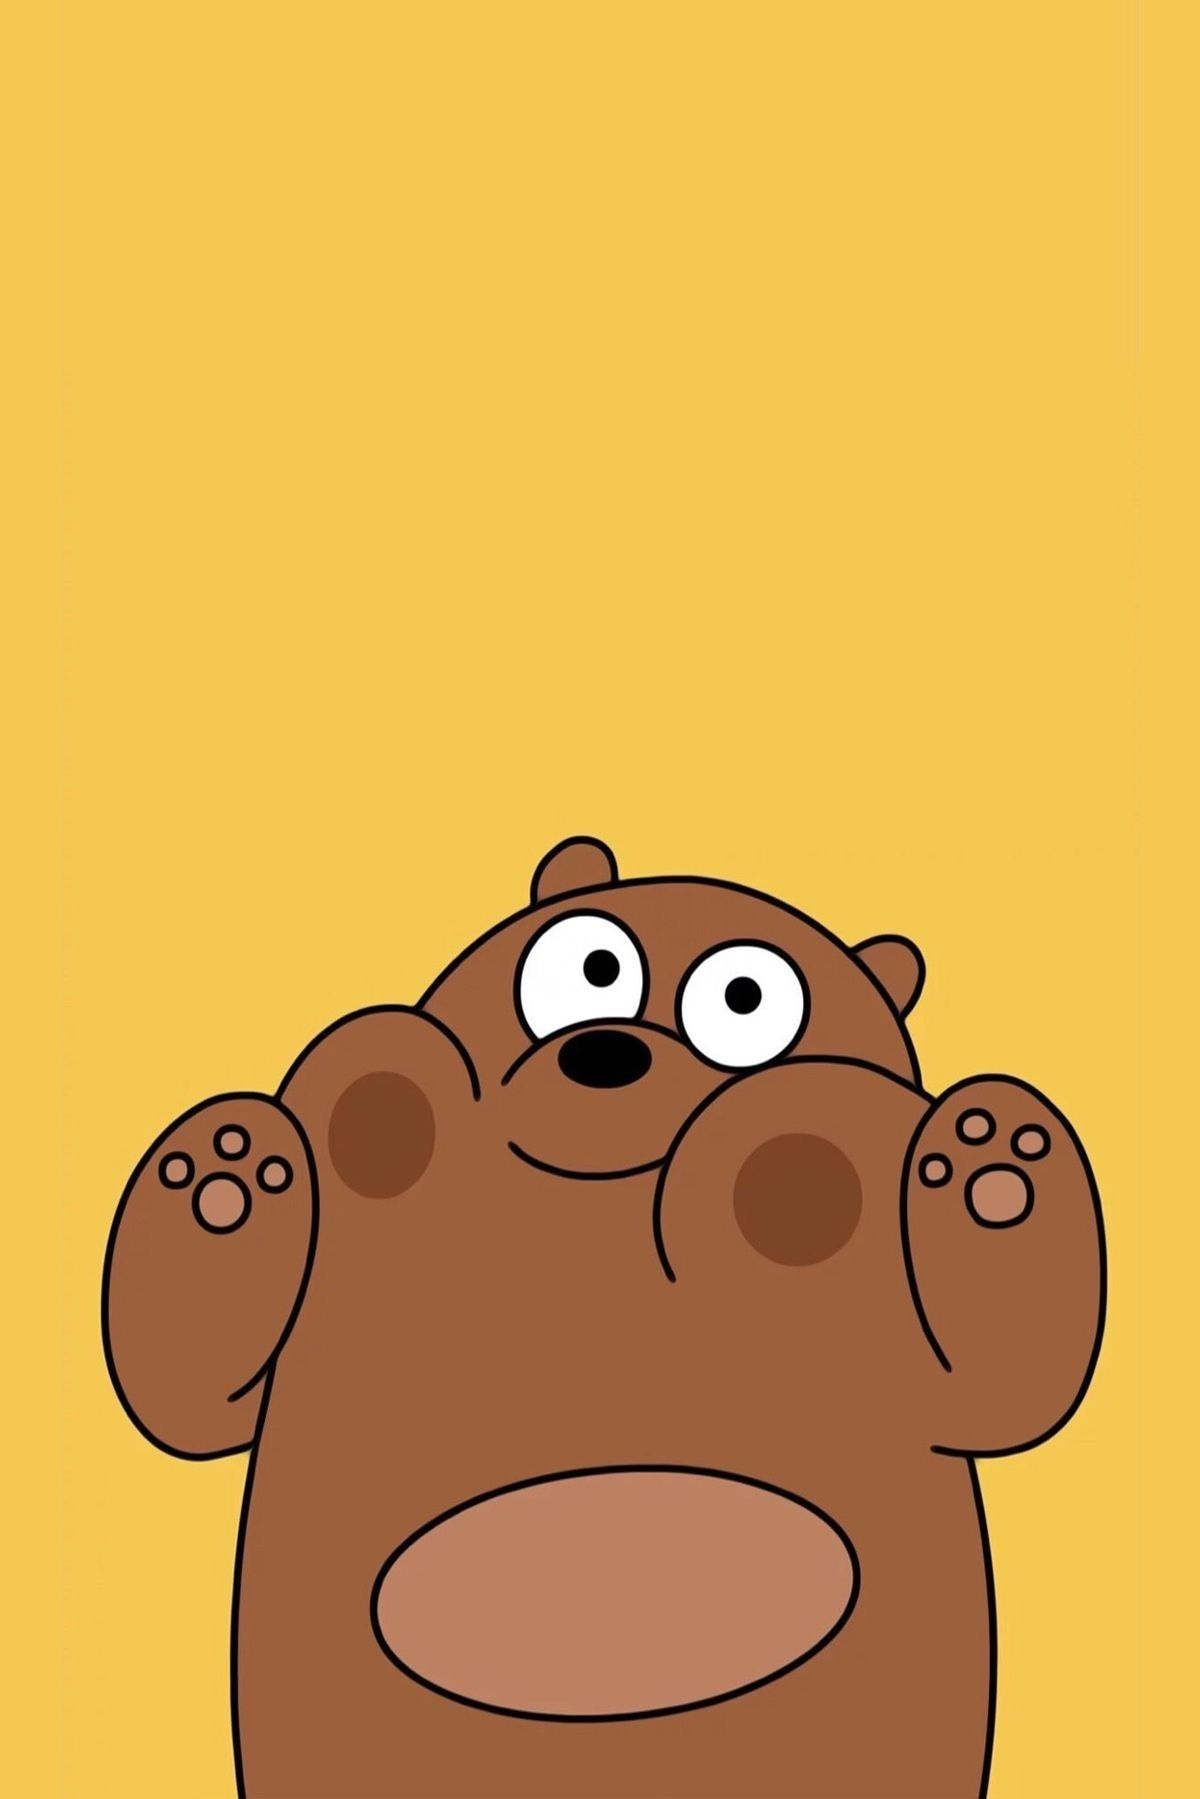 My Phones Wallpaper We All Need Grizz In Our Life Throughout We Bare Bears Grizz Wallpaper Bear Wallpaper We Bare Bears Wallpapers Cartoon Wallpaper